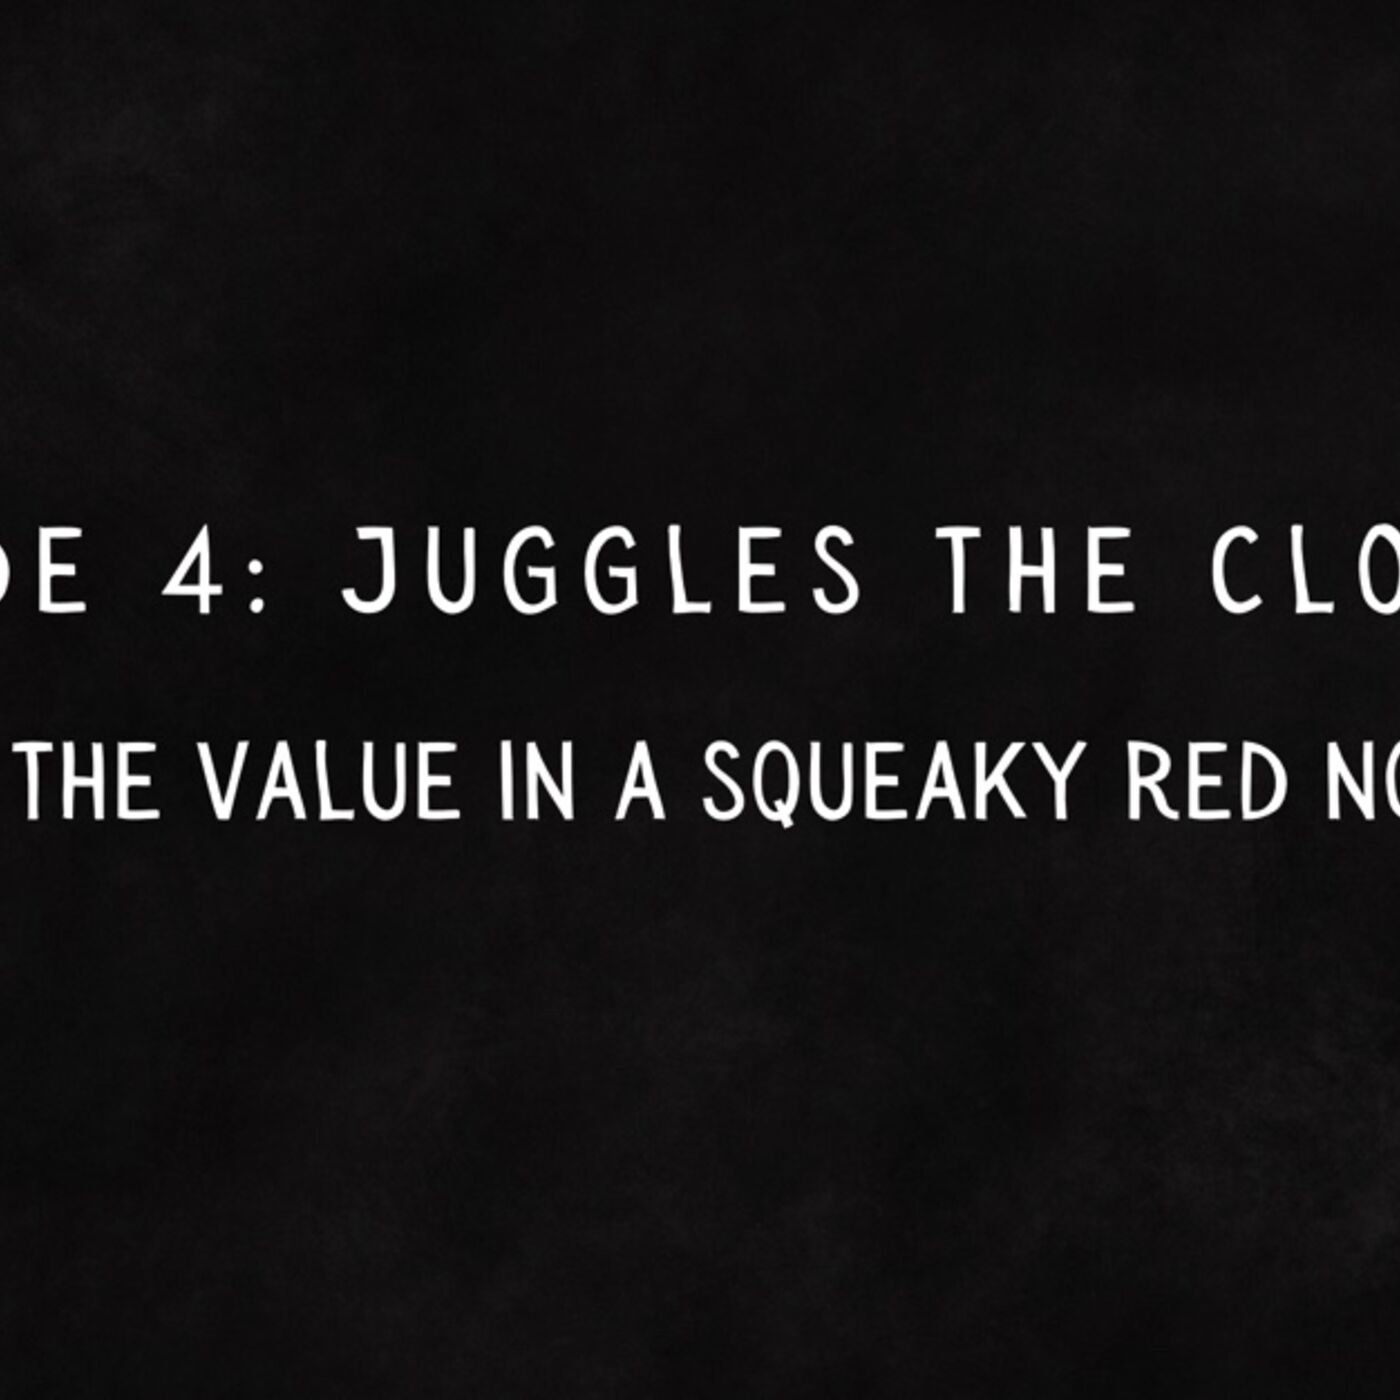 Episode 4: Juggles the Clown